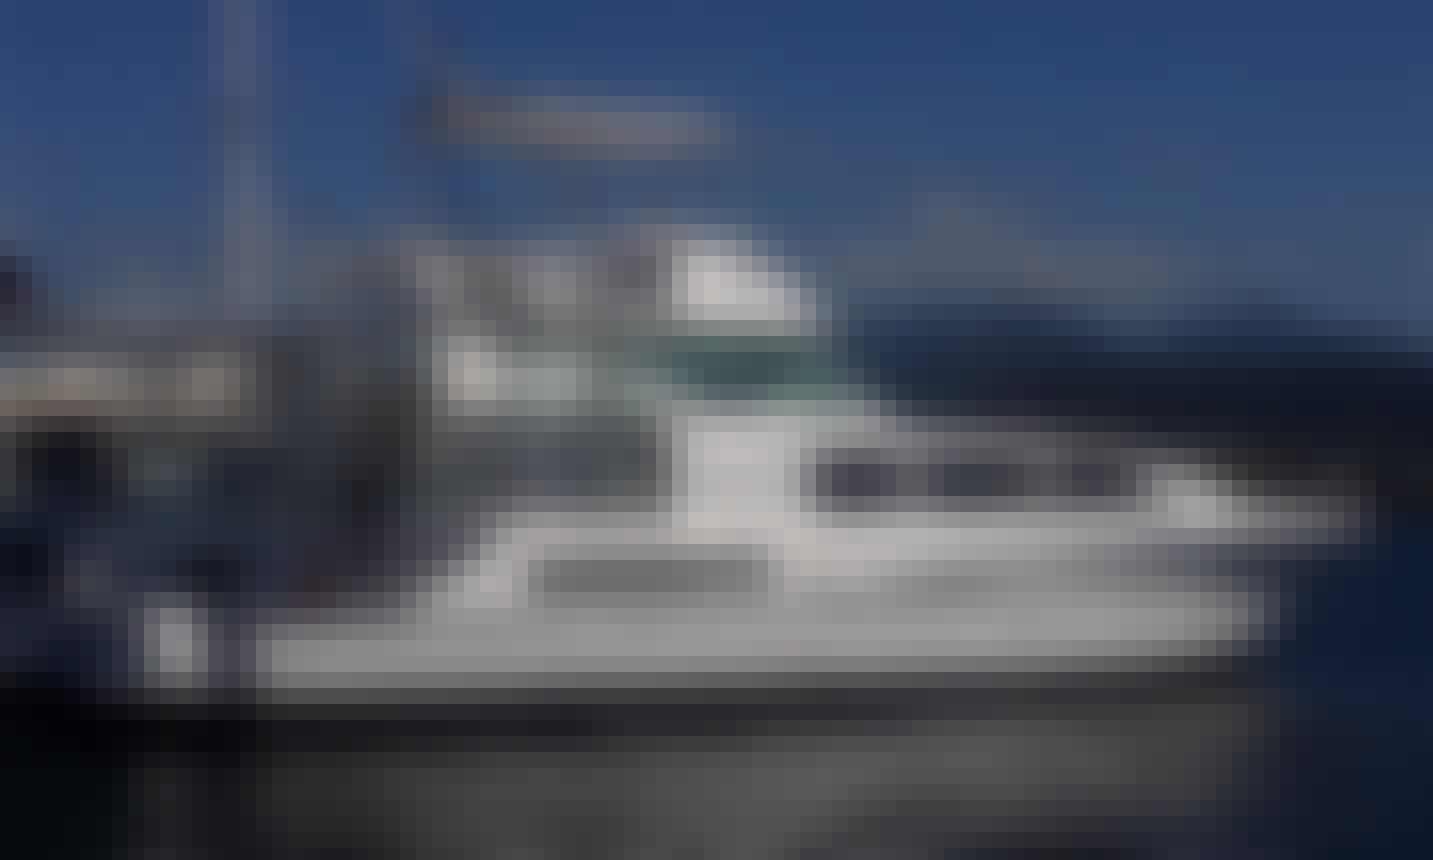 Motor Yacht Charter for 30 People in Olongapo, Philippines